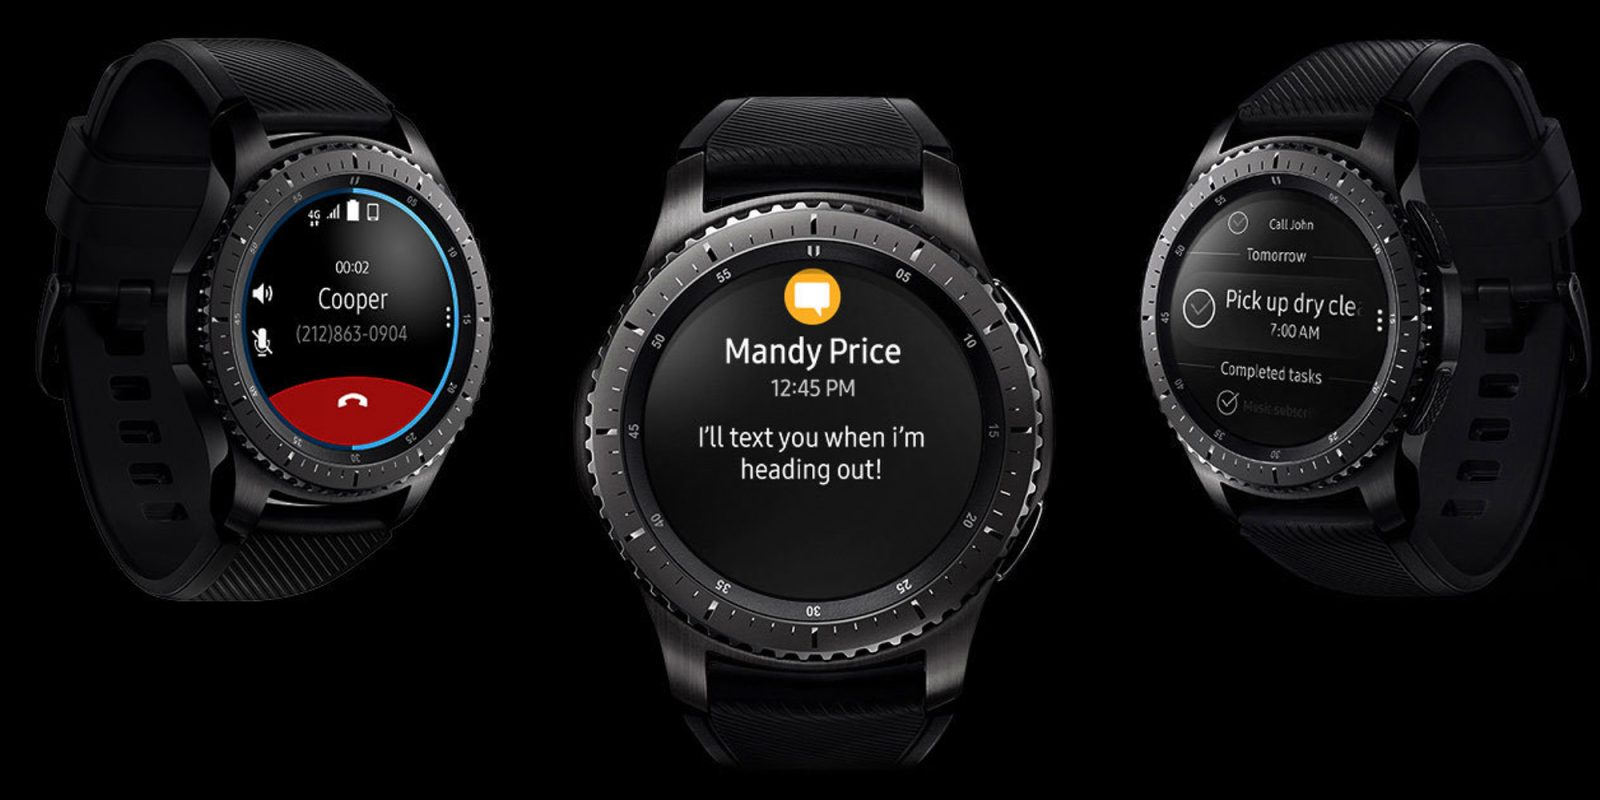 Save $100 on Samsung Gear S3 Frontier Smartwatch at one of its best prices yet